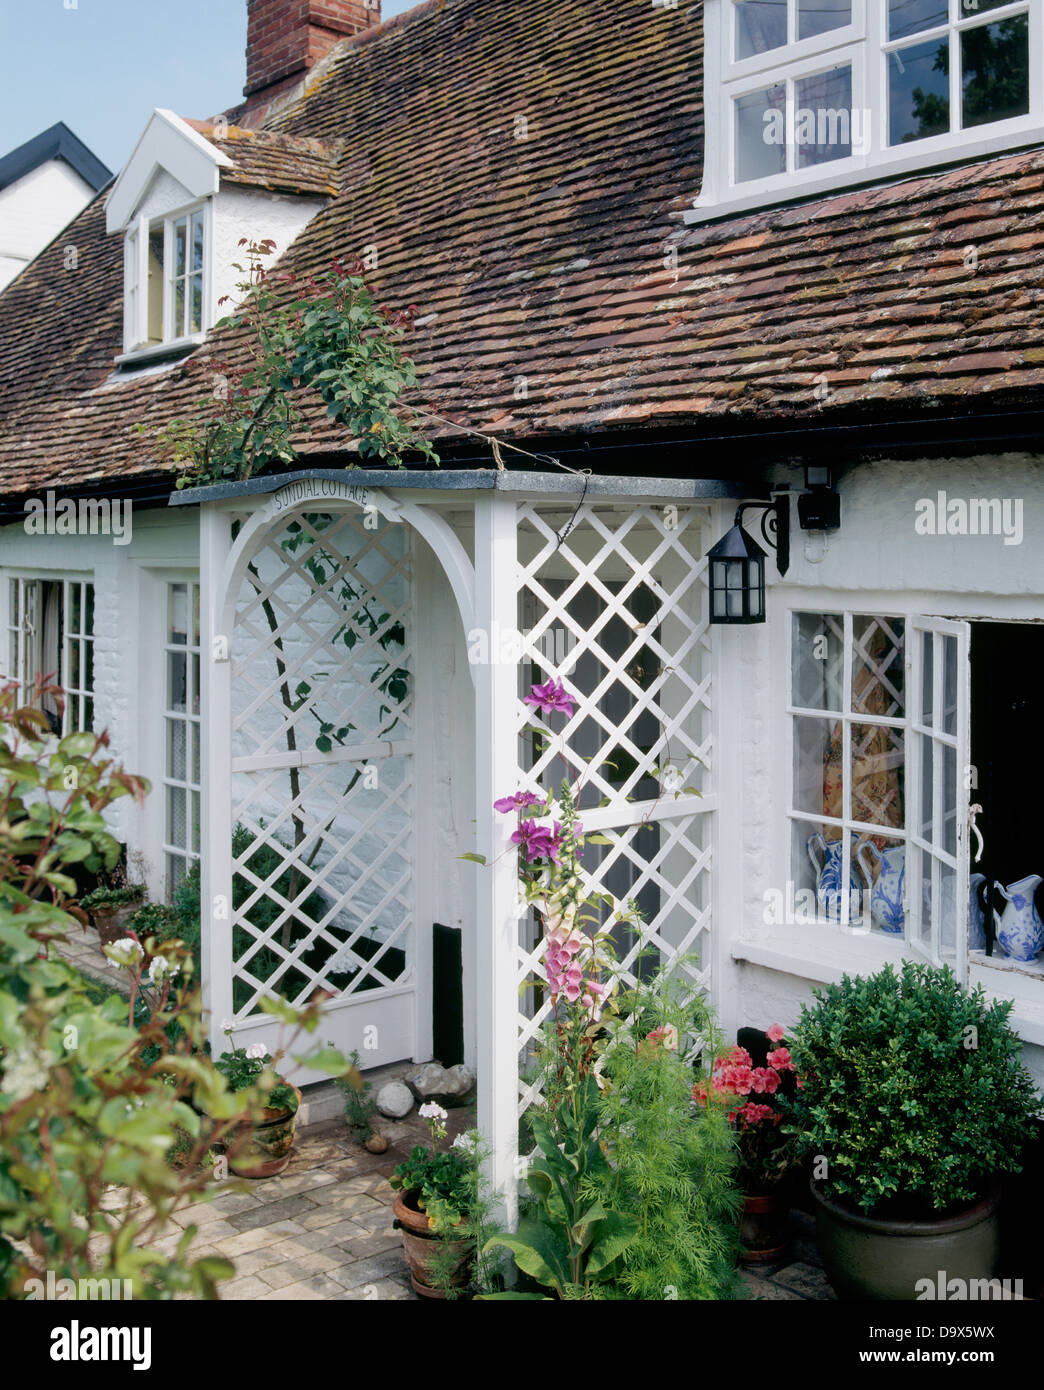 White 16th Century Cottage With Trellis Porch And Dormer